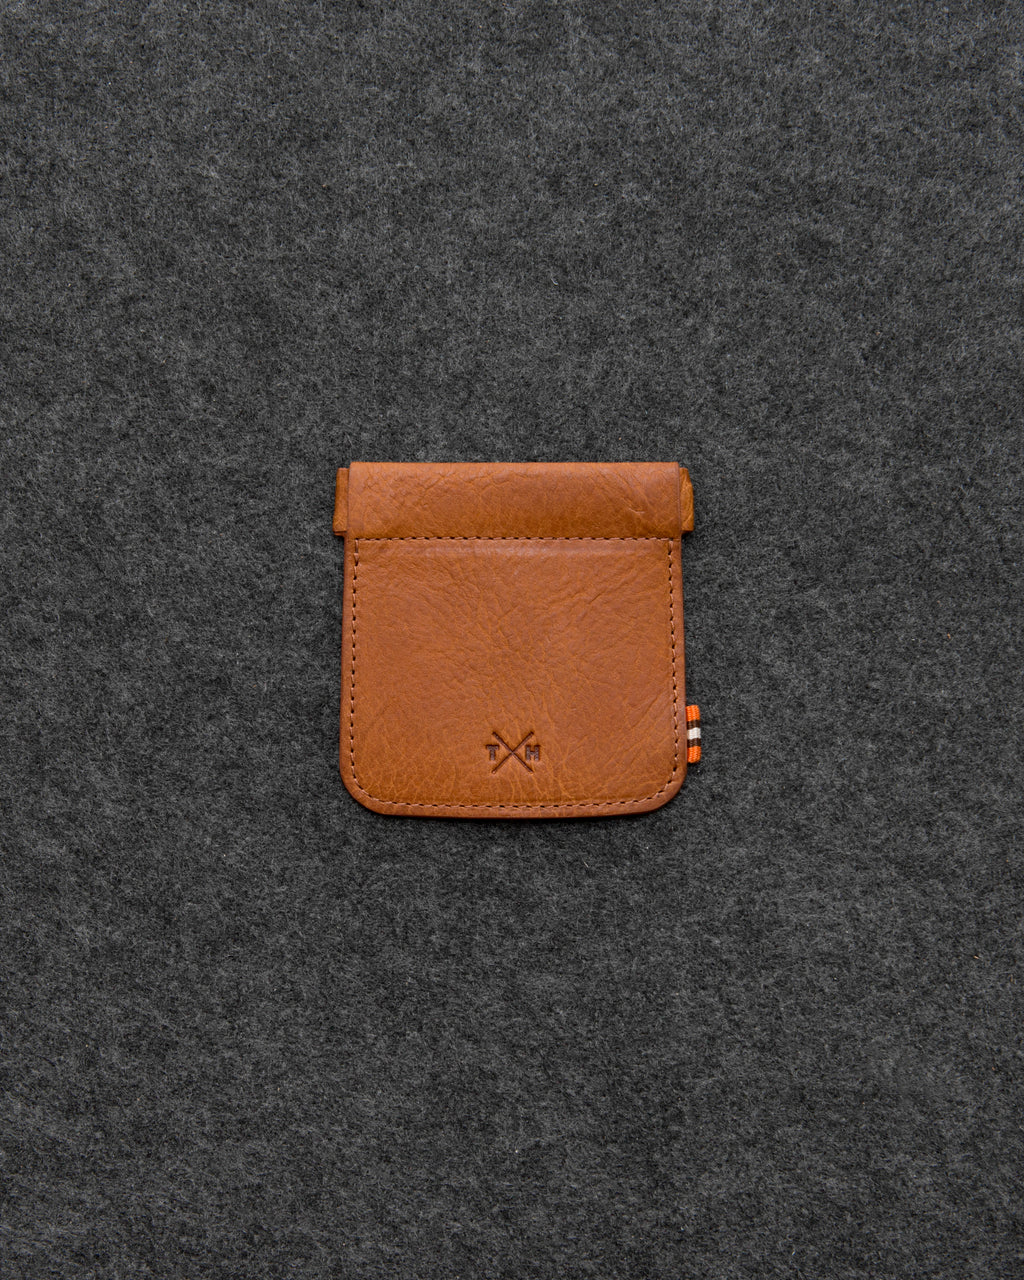 Tan Chukka Leather Snap Top Coin Pouch a